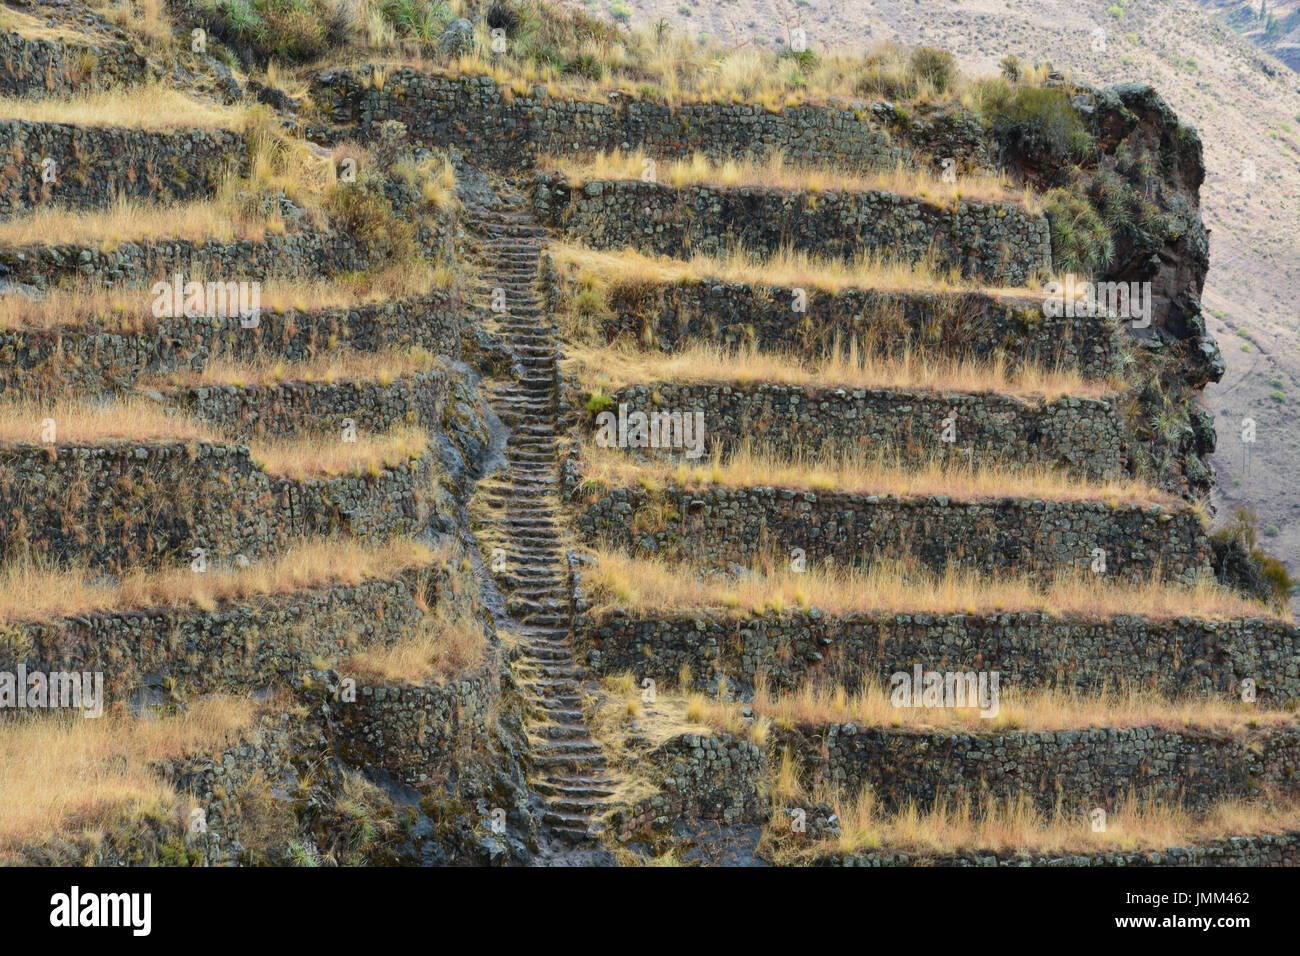 Overgrown agricultural terraces along the hiking trail at the ancient Inca ruins at Pisac - Stock Image